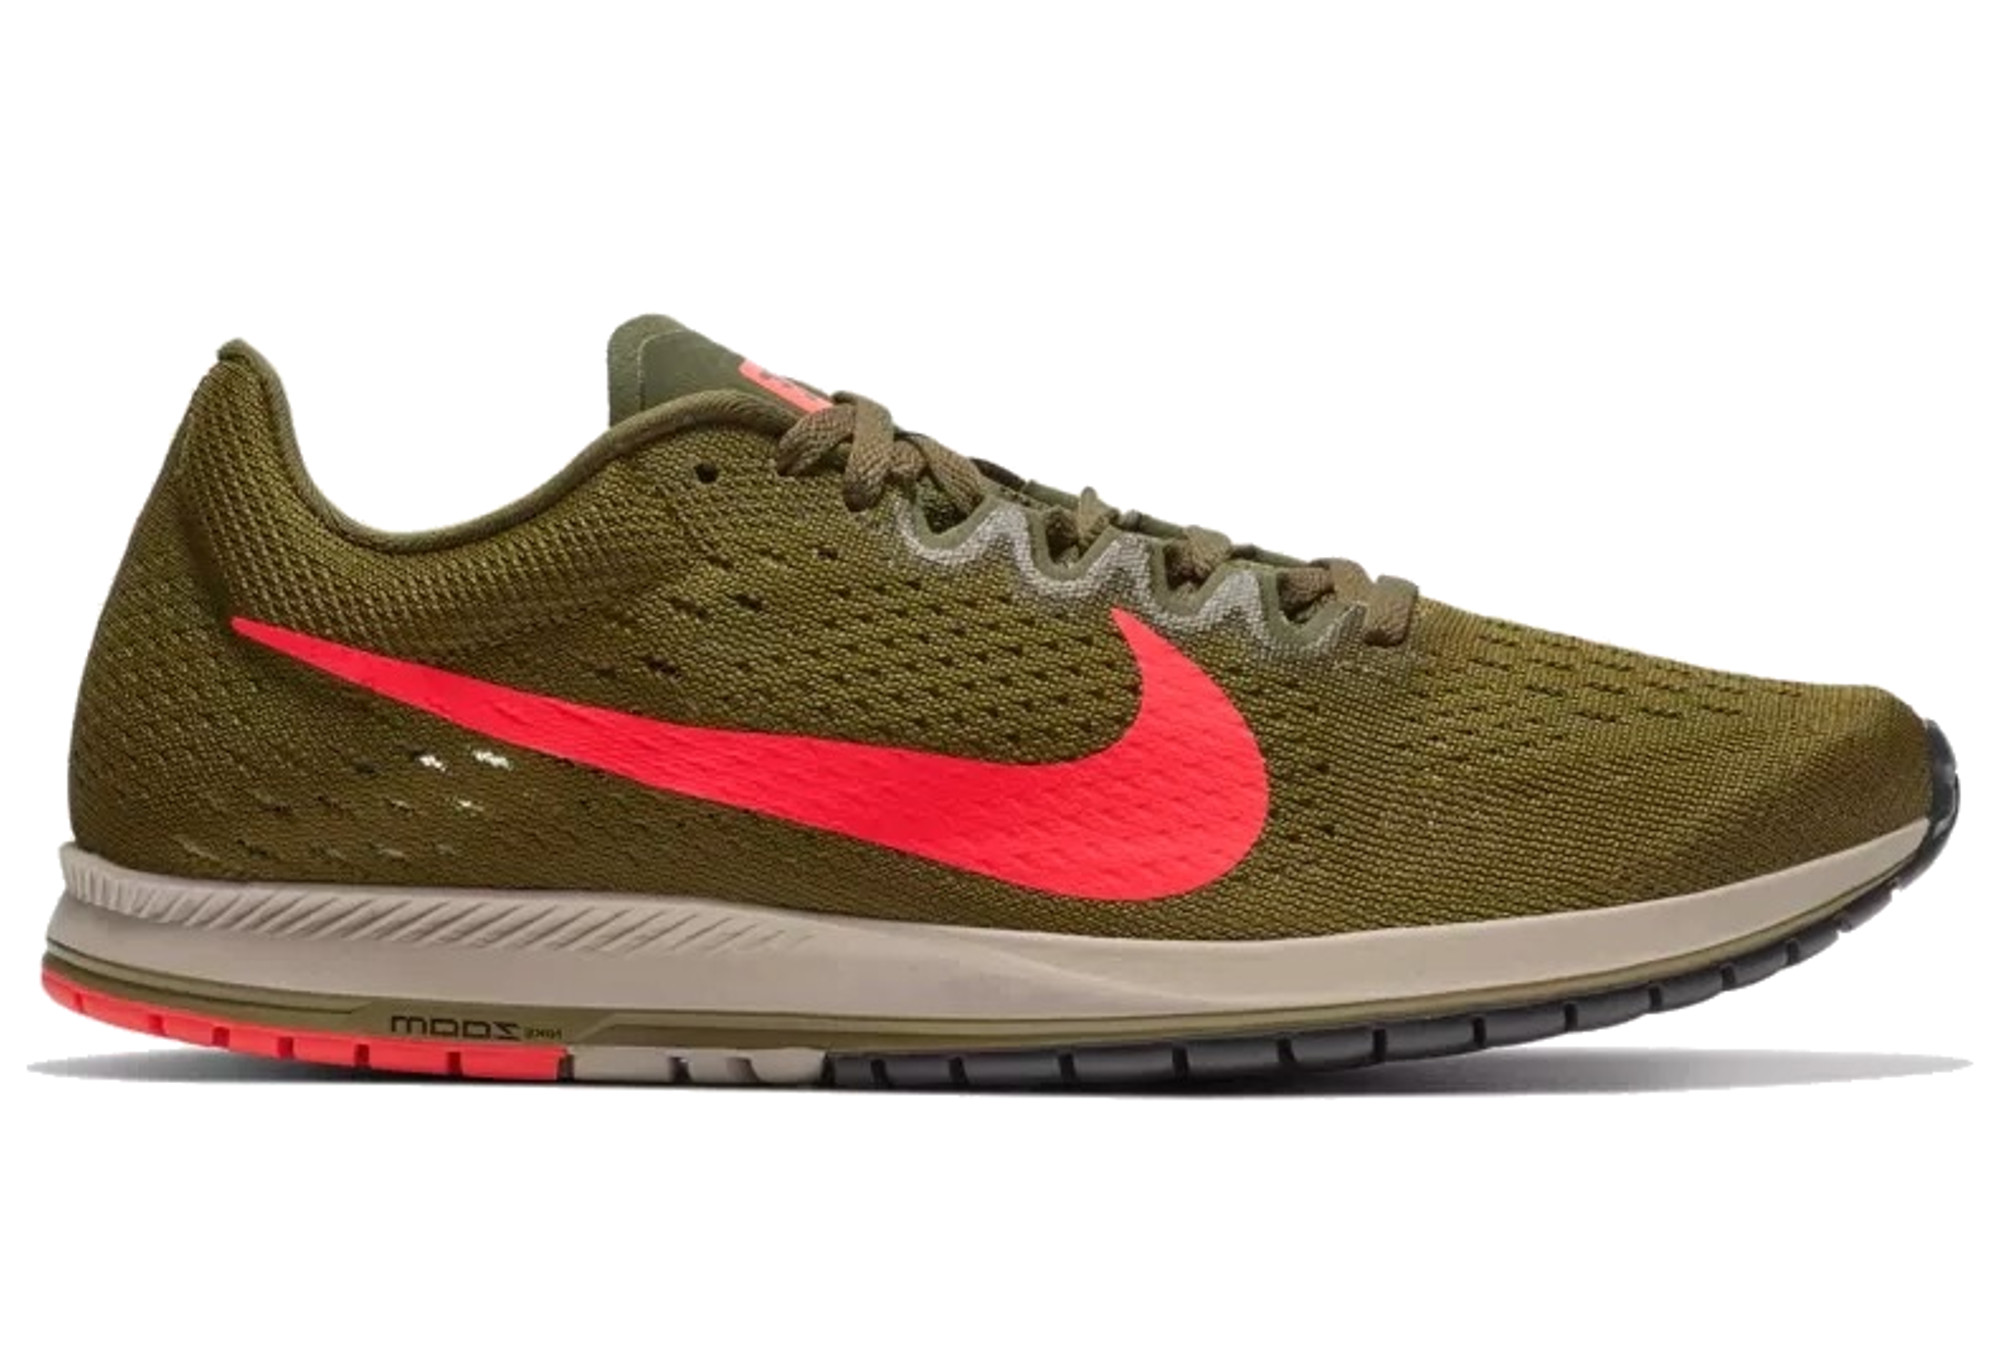 103112f91082 Nike Air Zoom Streak 6 Shoes Green Khaki